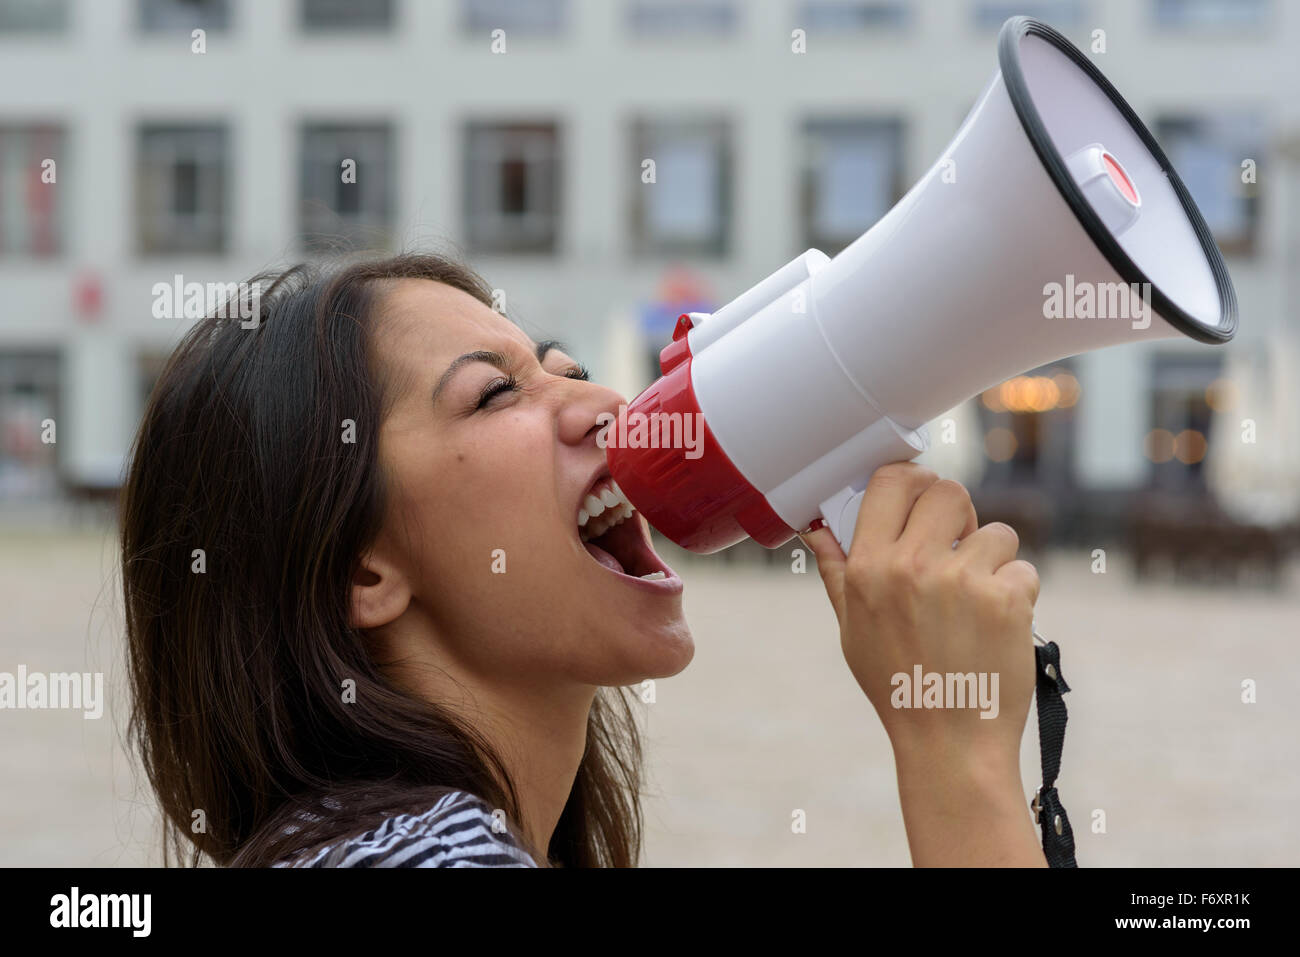 Woman yelling into a bullhorn on an urban street voicing her displaeasure during a protest or demonstration, close - Stock Image